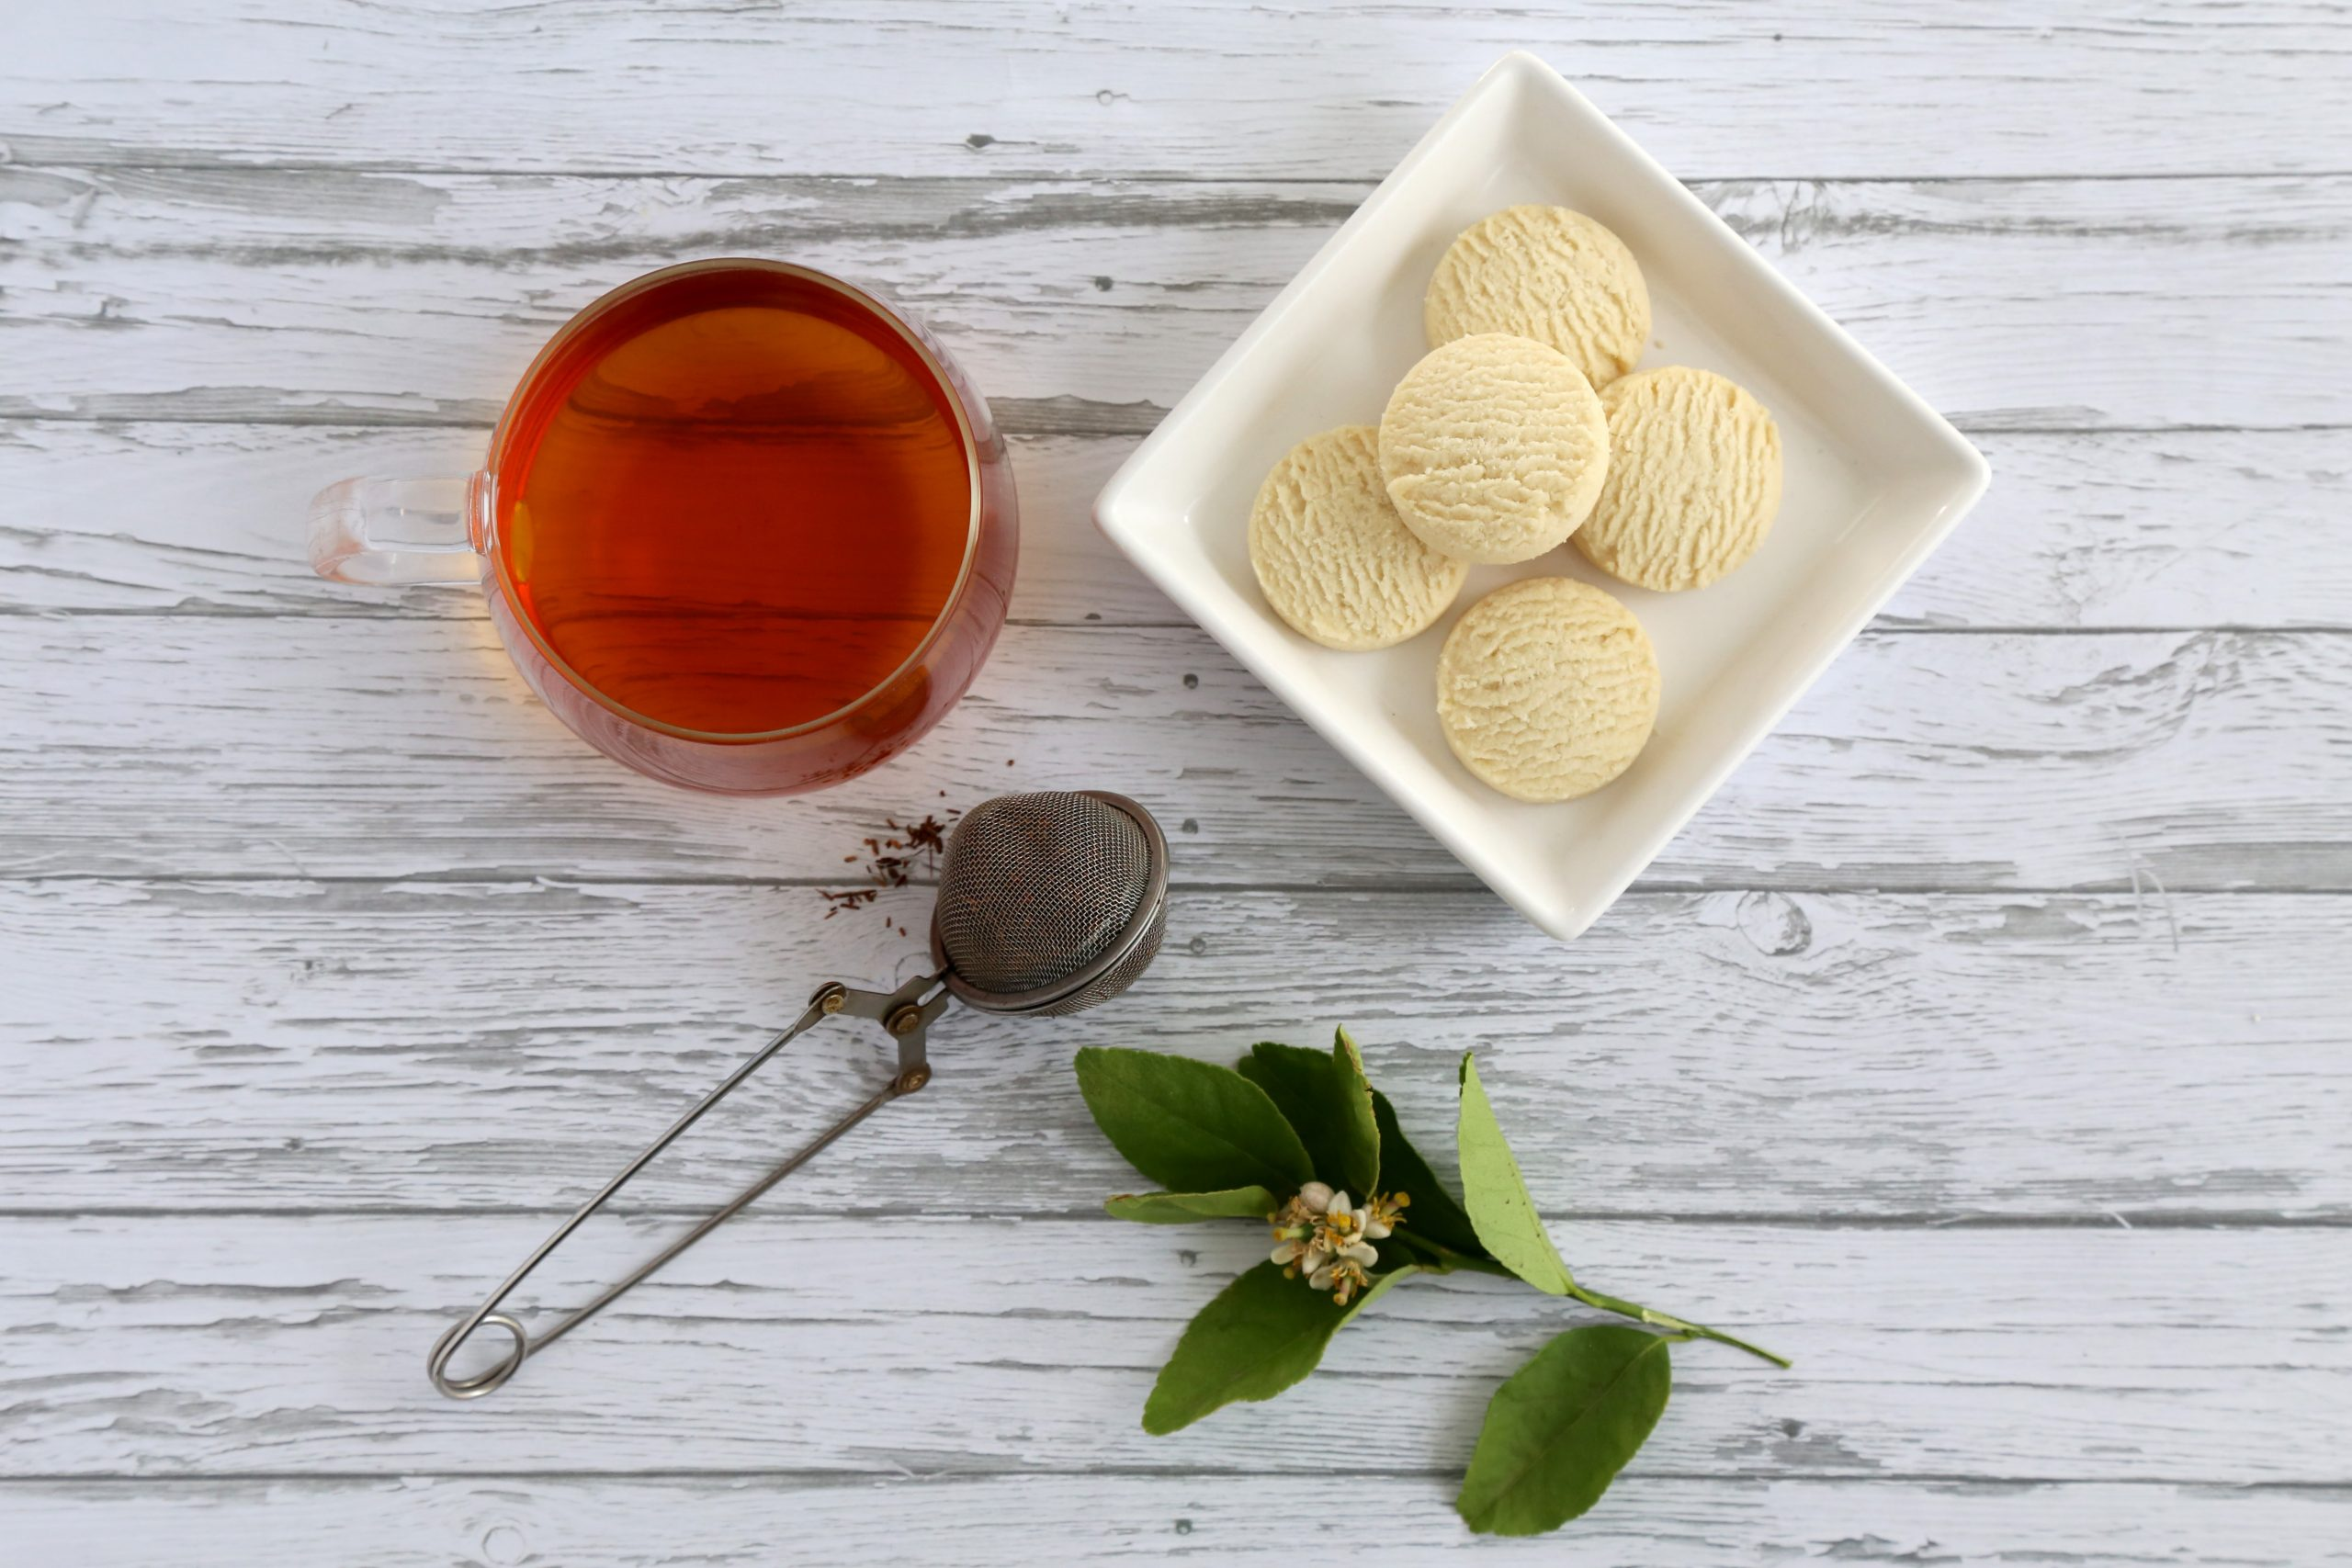 3 Ingredient Old Fashioned Butter Shortbread Cookie Recipe (3,2,1 Ratio)